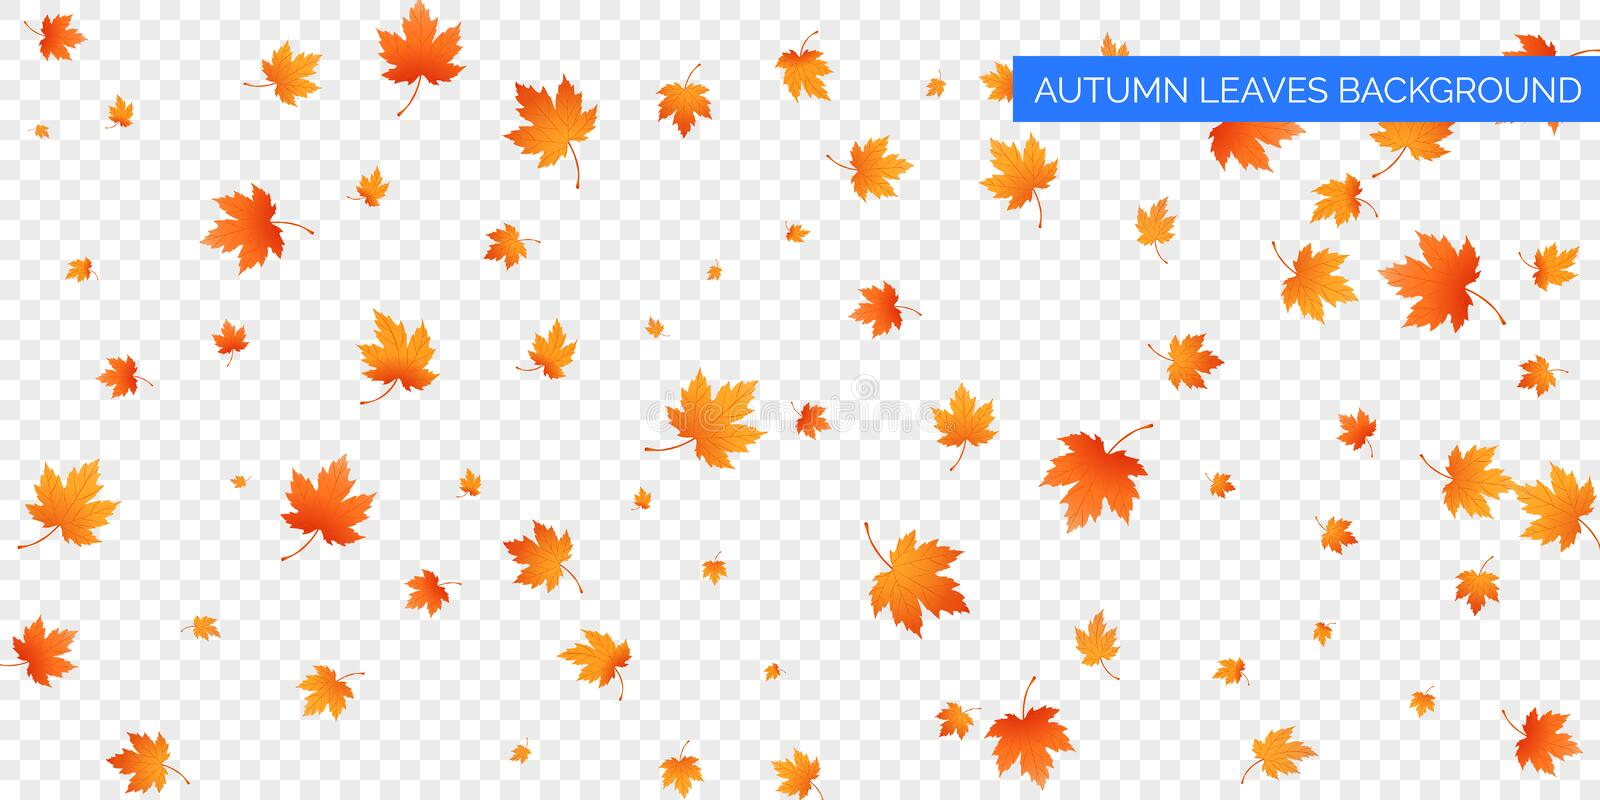 Autumn falling leaves on transparent background. Vector autumnal foliage fall of maple leaves. Autumn background design.  royalty free illustration